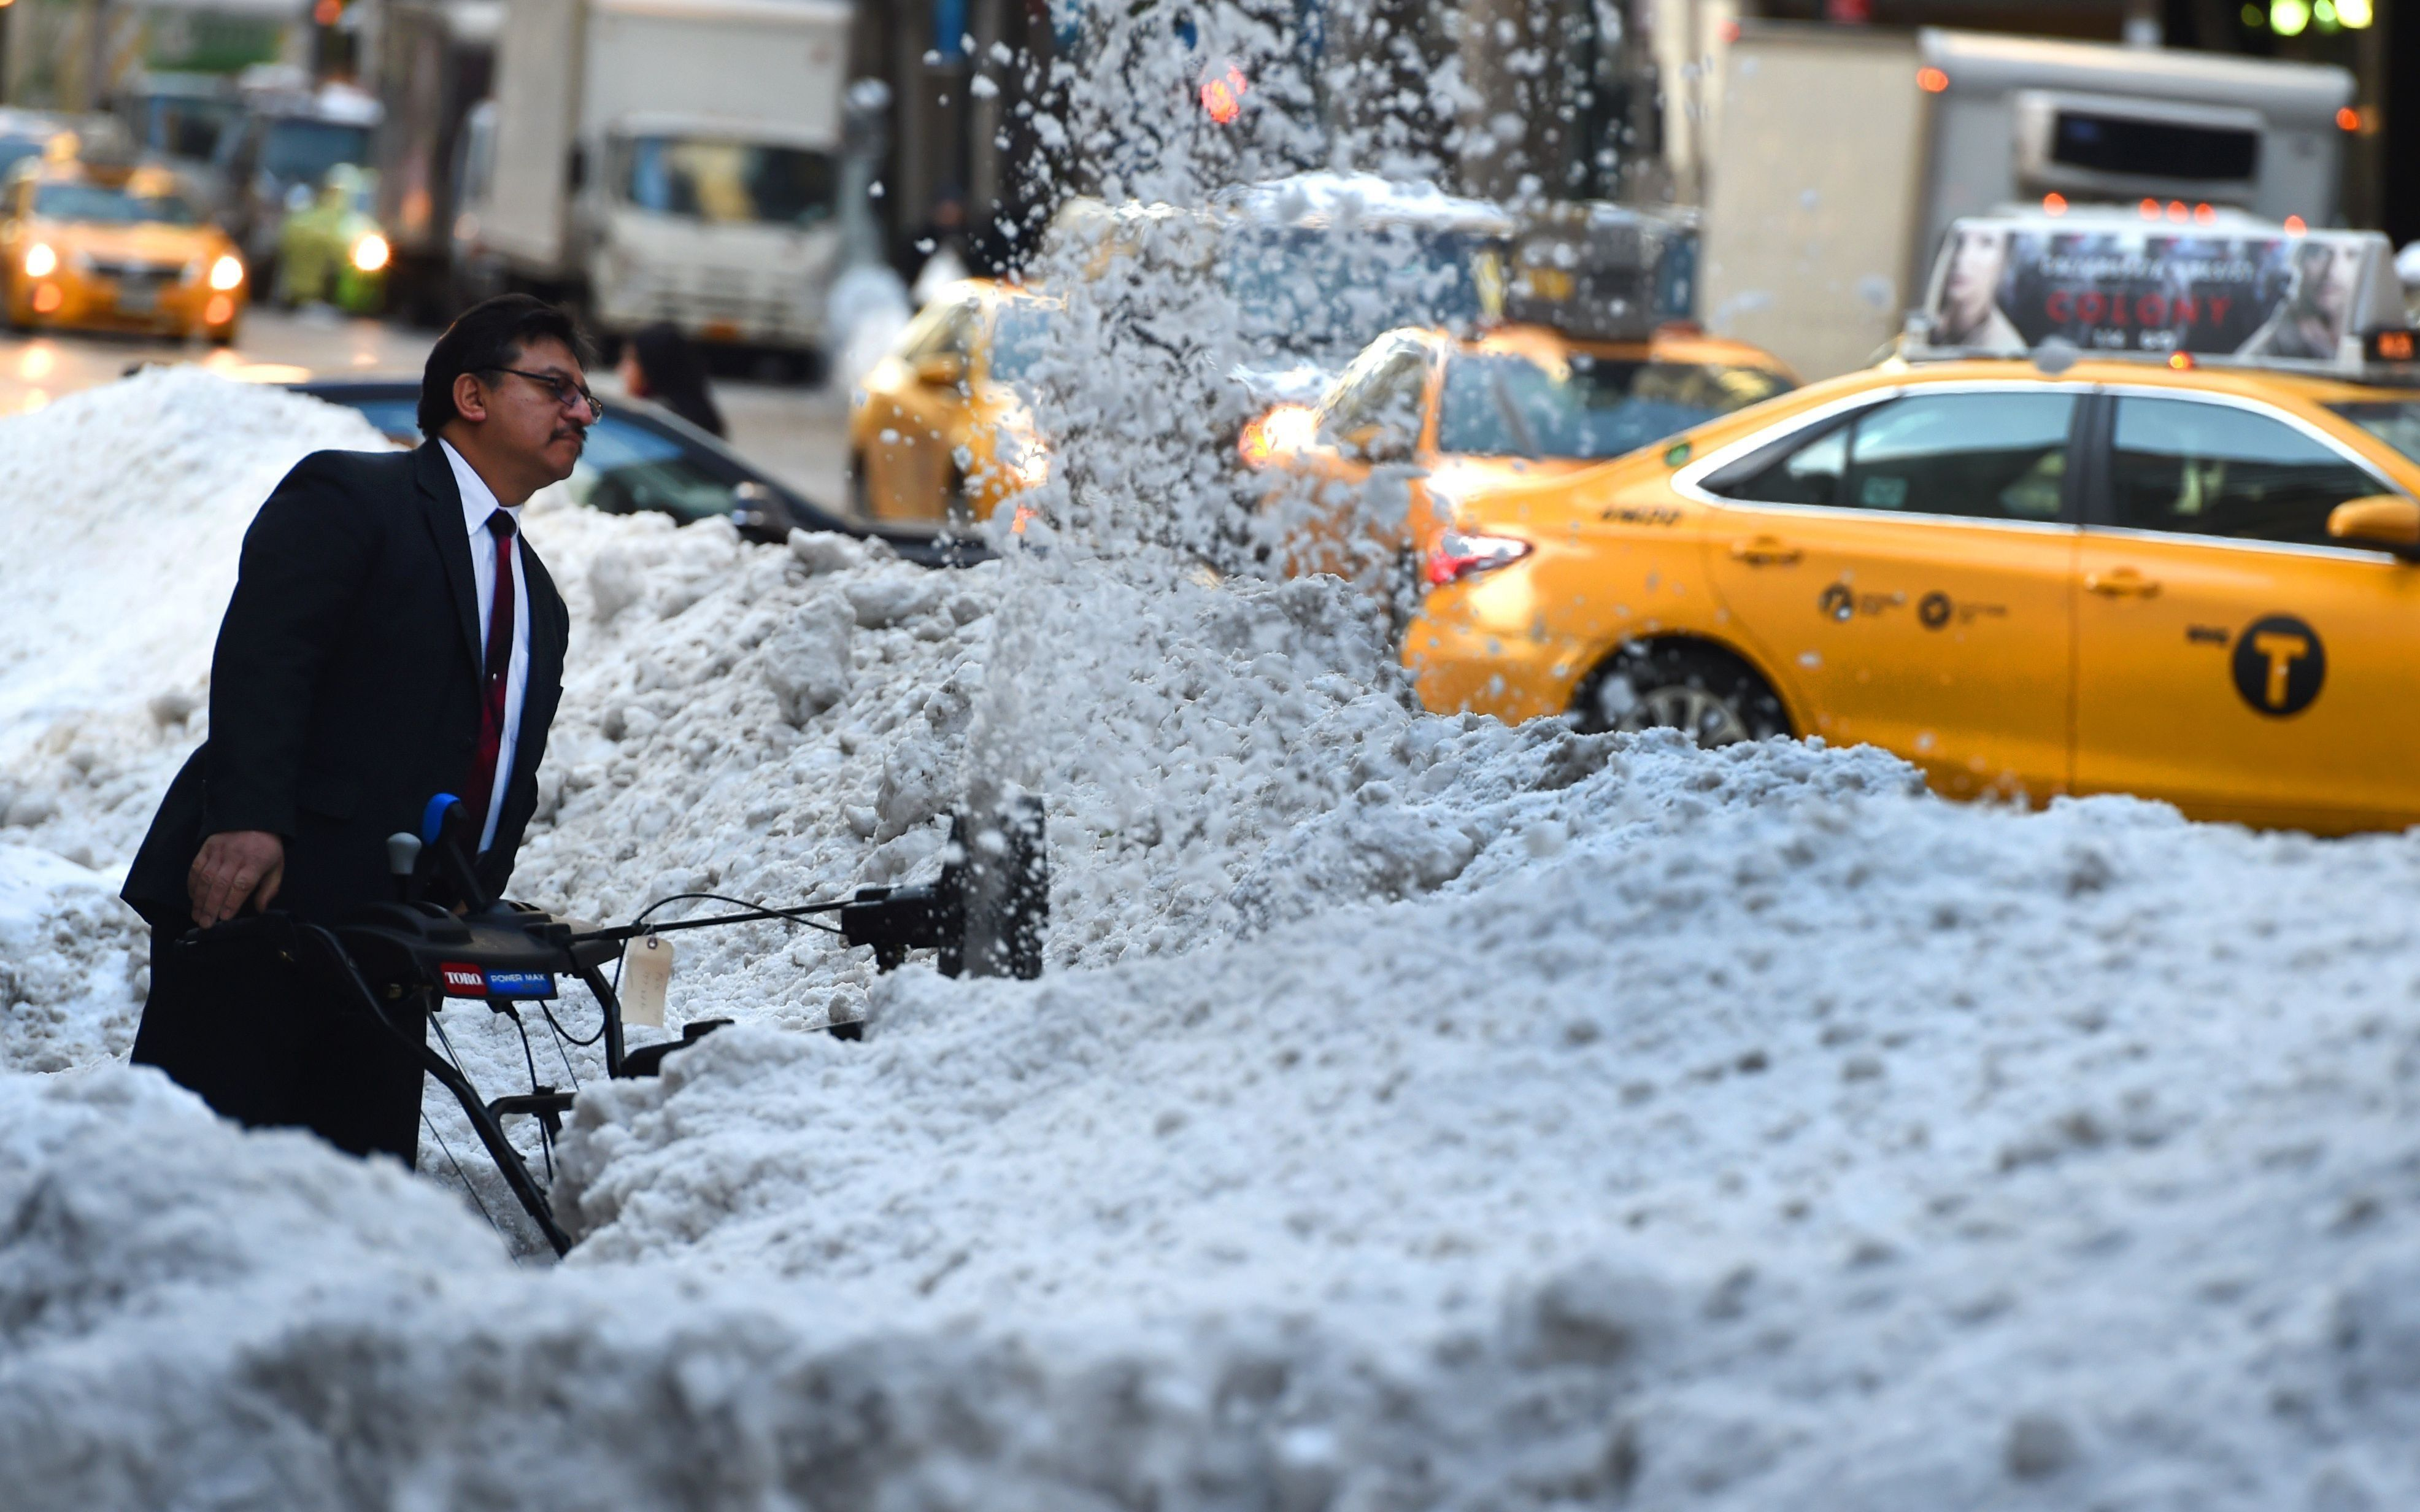 A worker clears snow on 3rd Avenue January 25, 2016 as New Yorkers return to work after the city was hit with a record-setting snowfall.  The eastern United States emerged wearily from a massive blizzard that dumped huge amounts of snow and killed at least 25 people, but Washington was still reeling, with government offices and schools to remain closed Monday. / AFP / Timothy A. CLARY        (Photo credit should read TIMOTHY A. CLARY/AFP/Getty Images)